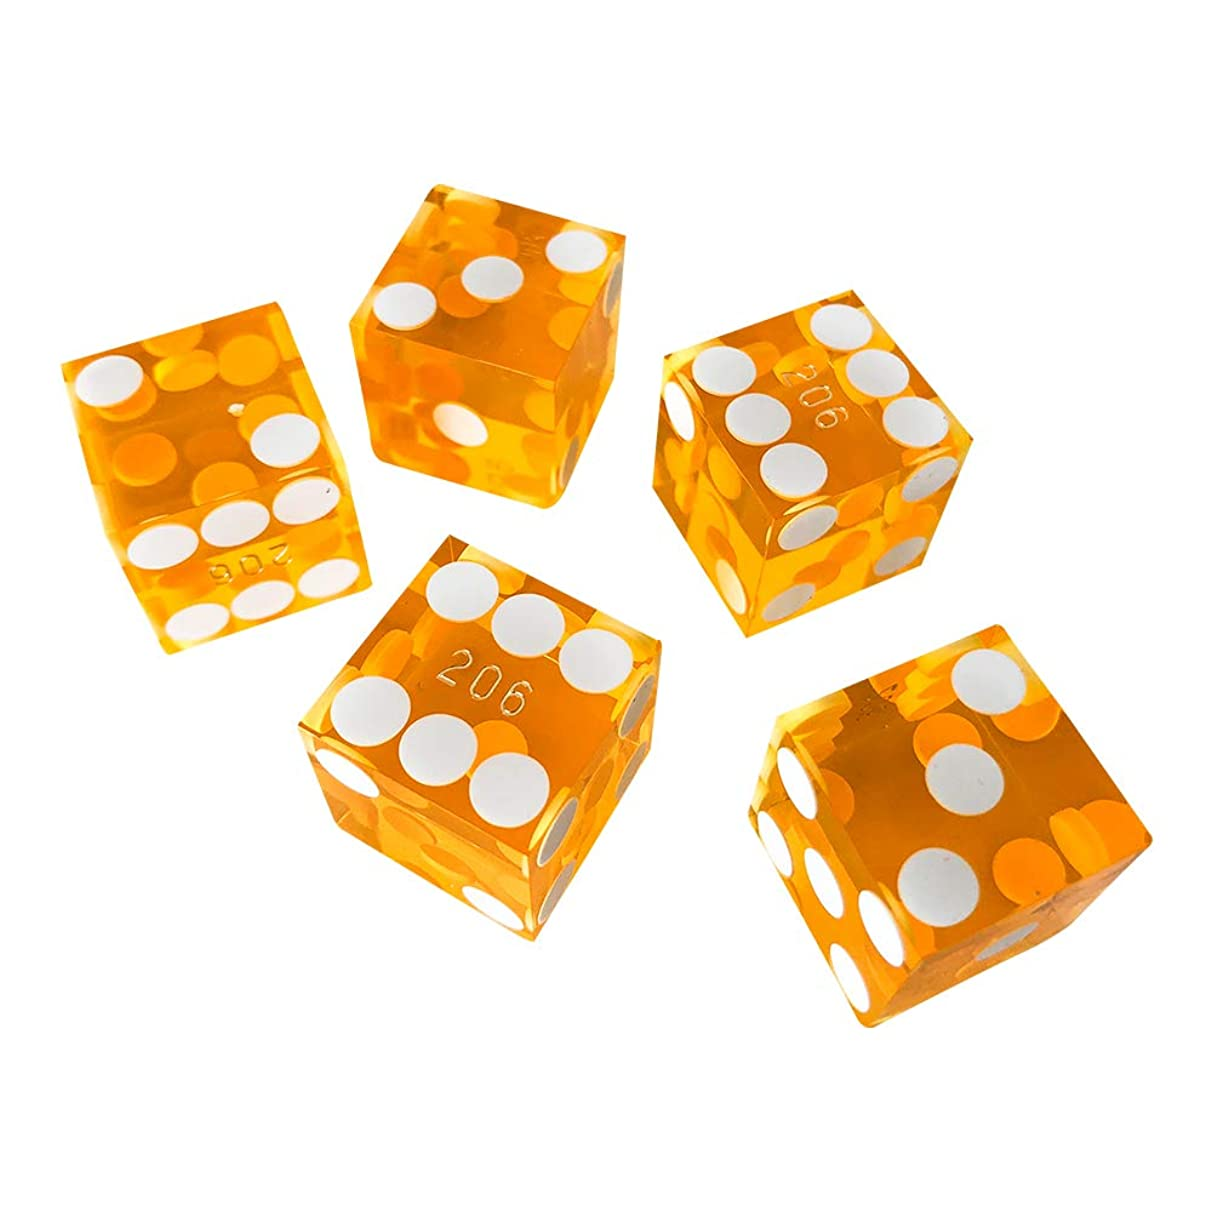 YH Poker Set of 5 Precision 19mm Serialized Casino dice with Razor Edges and Corners (Yellow) ?-